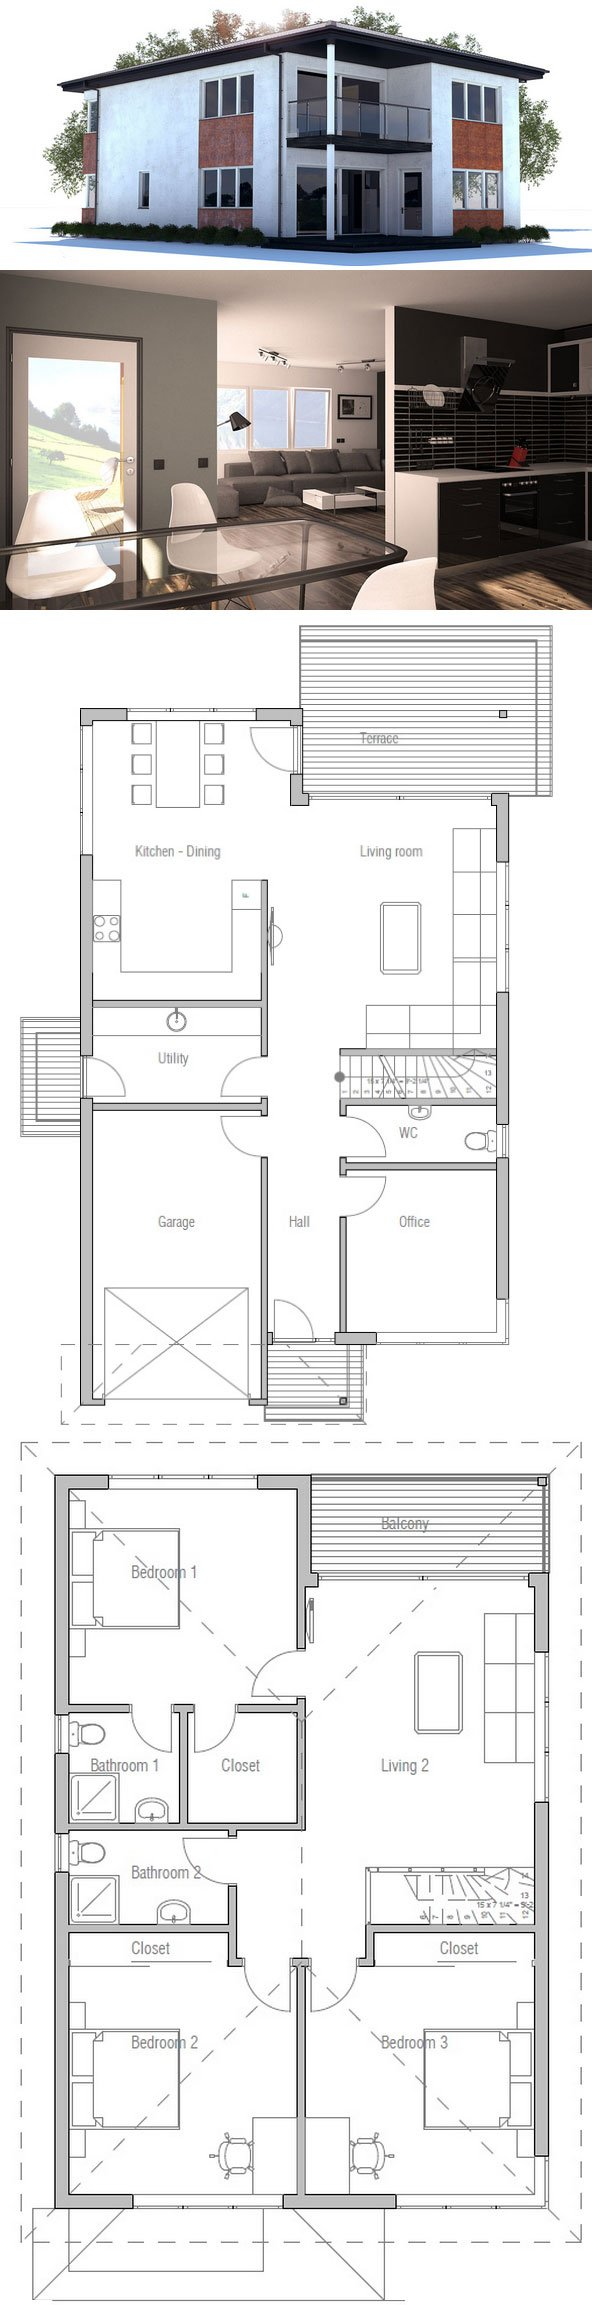 Modern House Plan with three bedrooms and